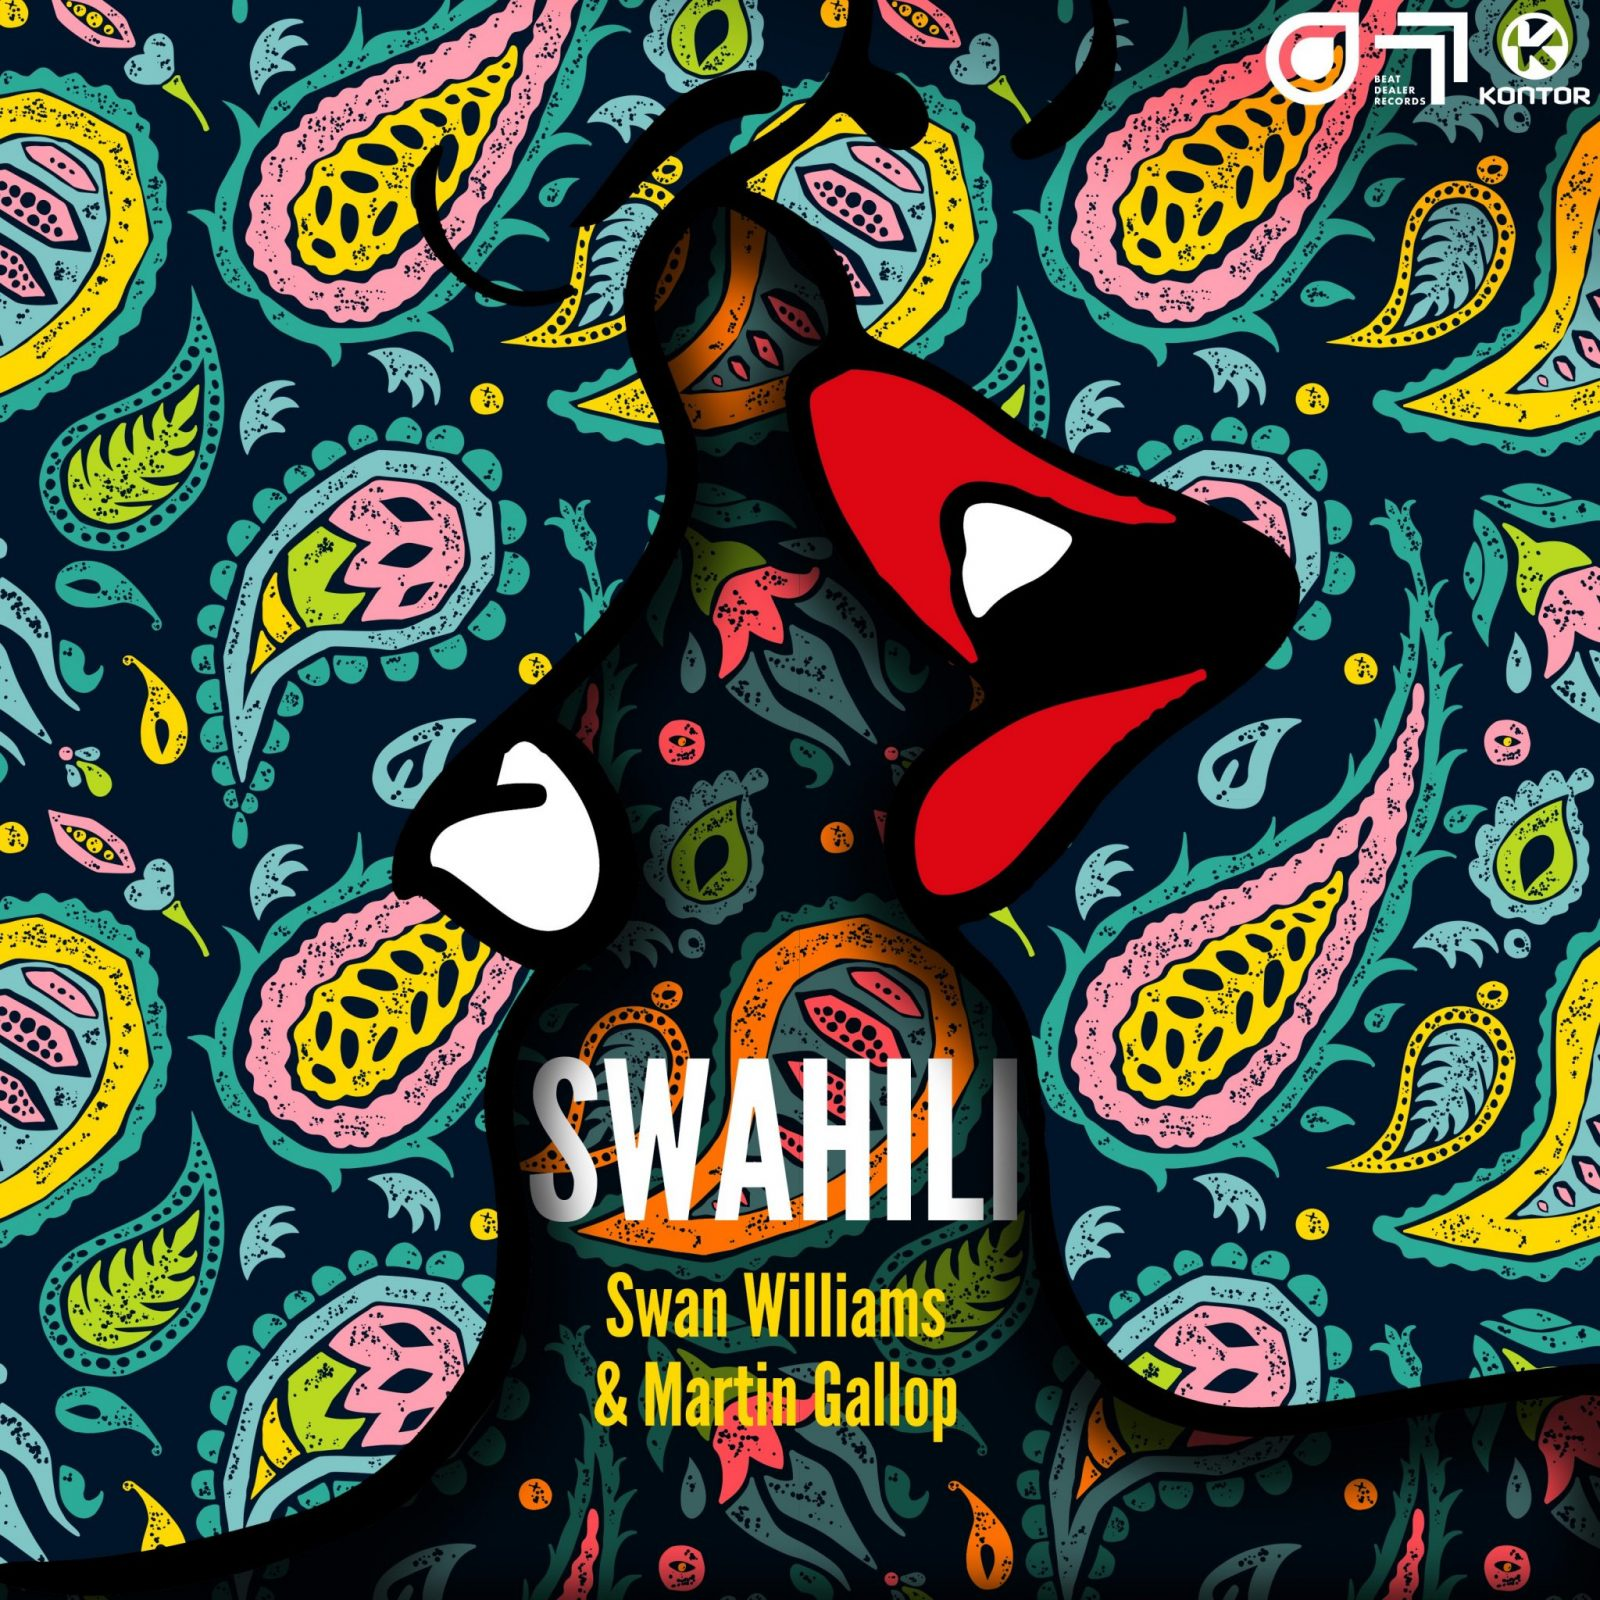 Swan Williams & Martin Gallop - Swahili